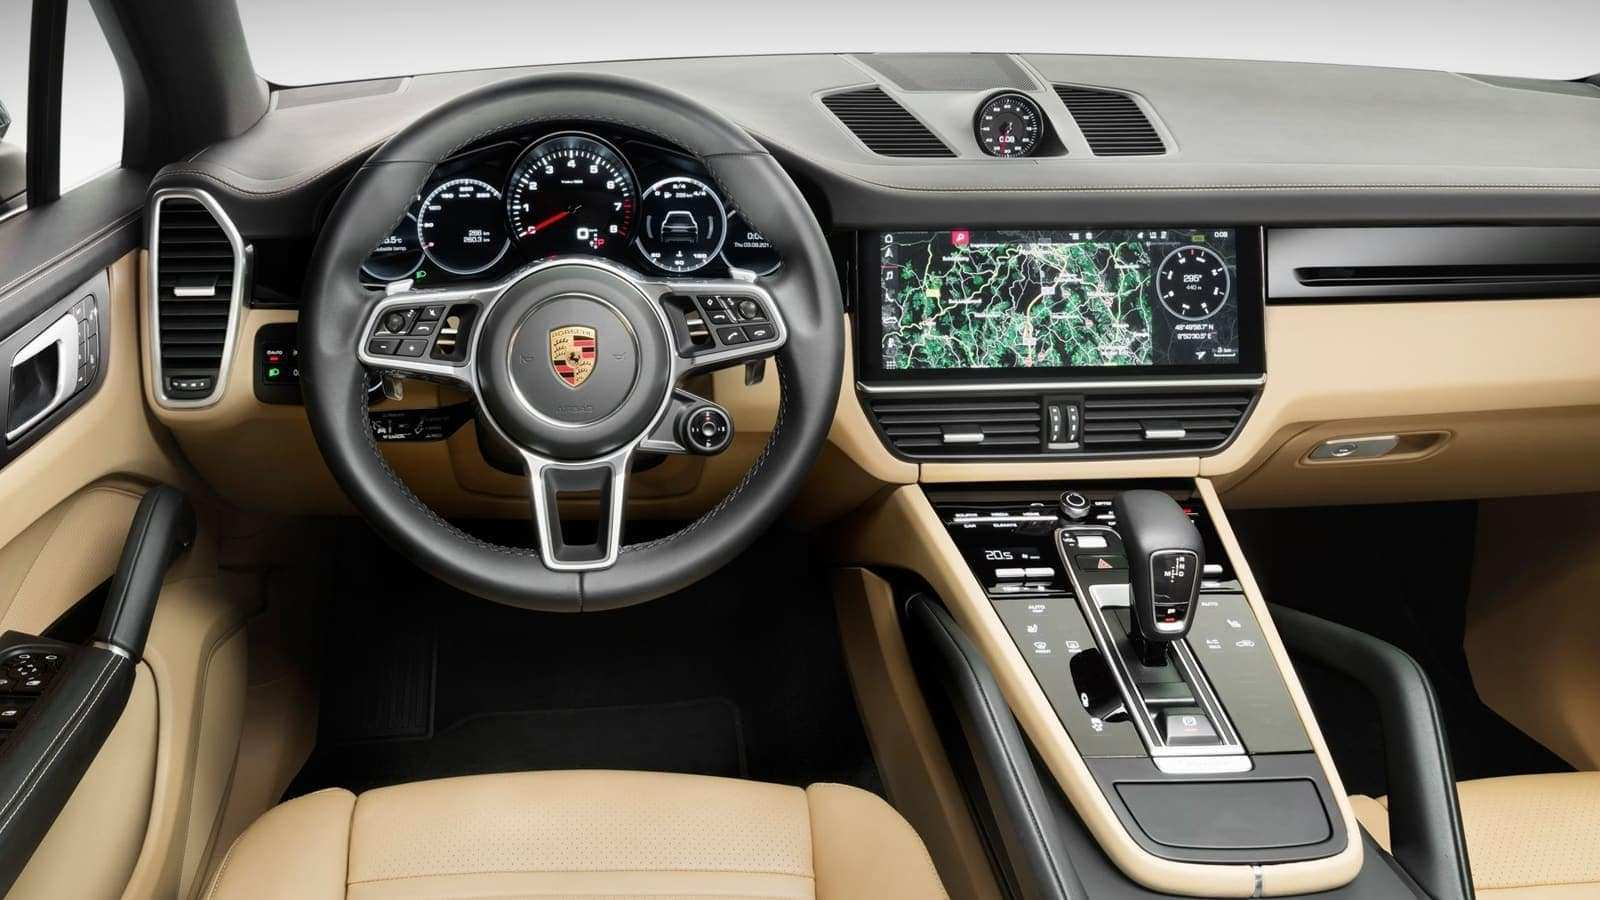 78 All New 2019 Porsche Cayenne Standard Features Photos